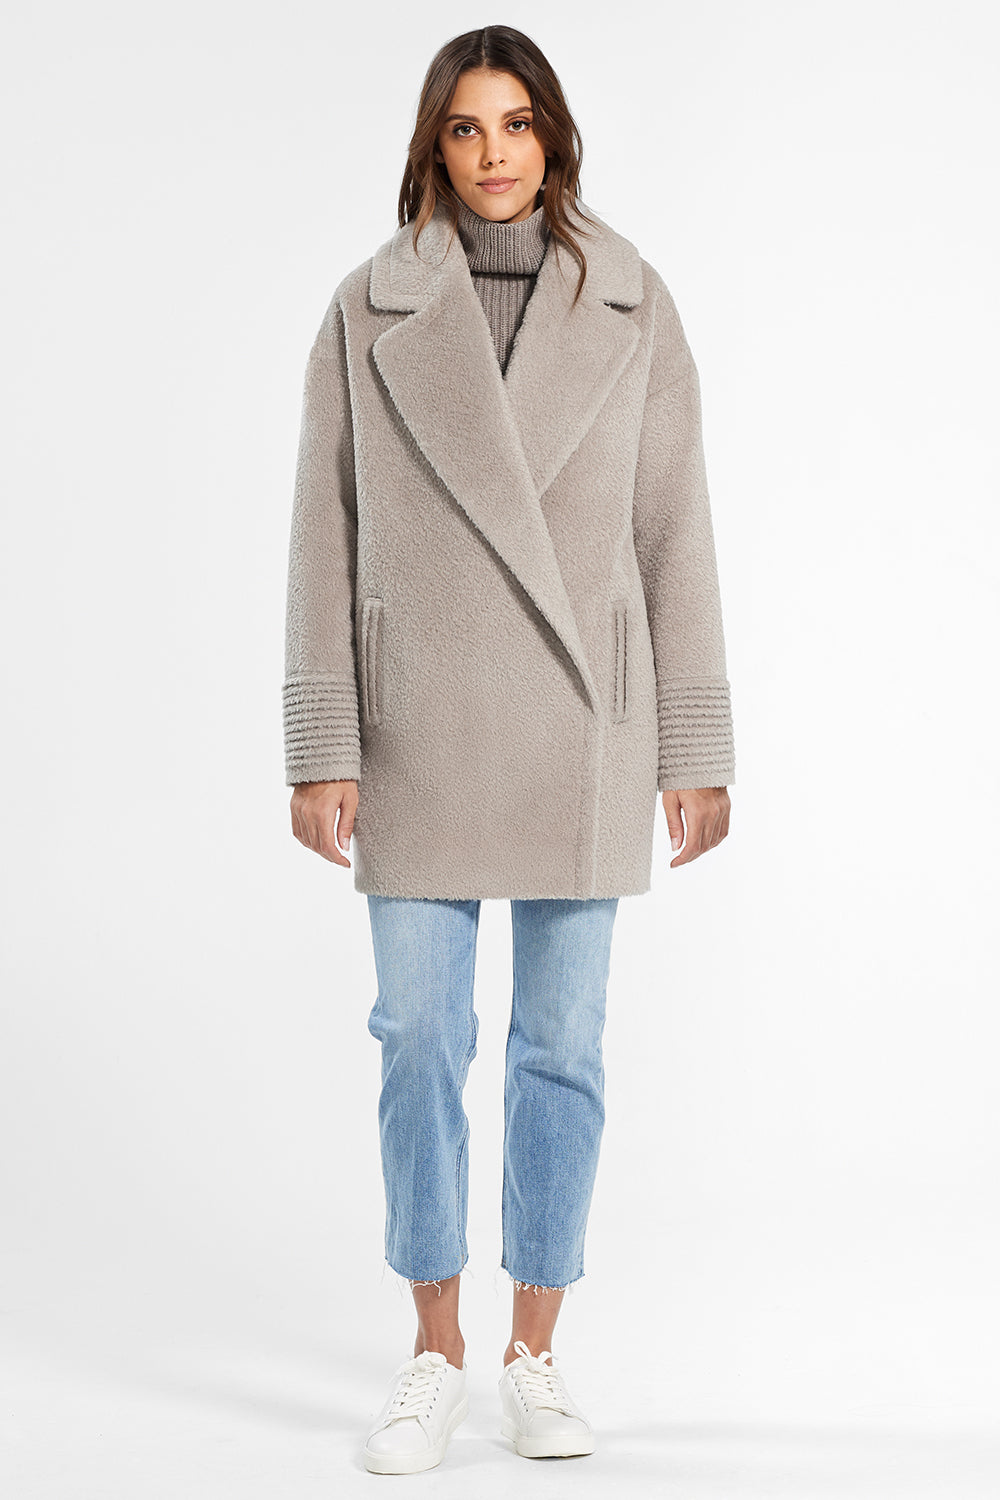 Sentaler Bouclé Alpaca Mid Length Oversized Notched Collar Coat featured in Bouclé Alpaca and available in Sand. Seen from front.